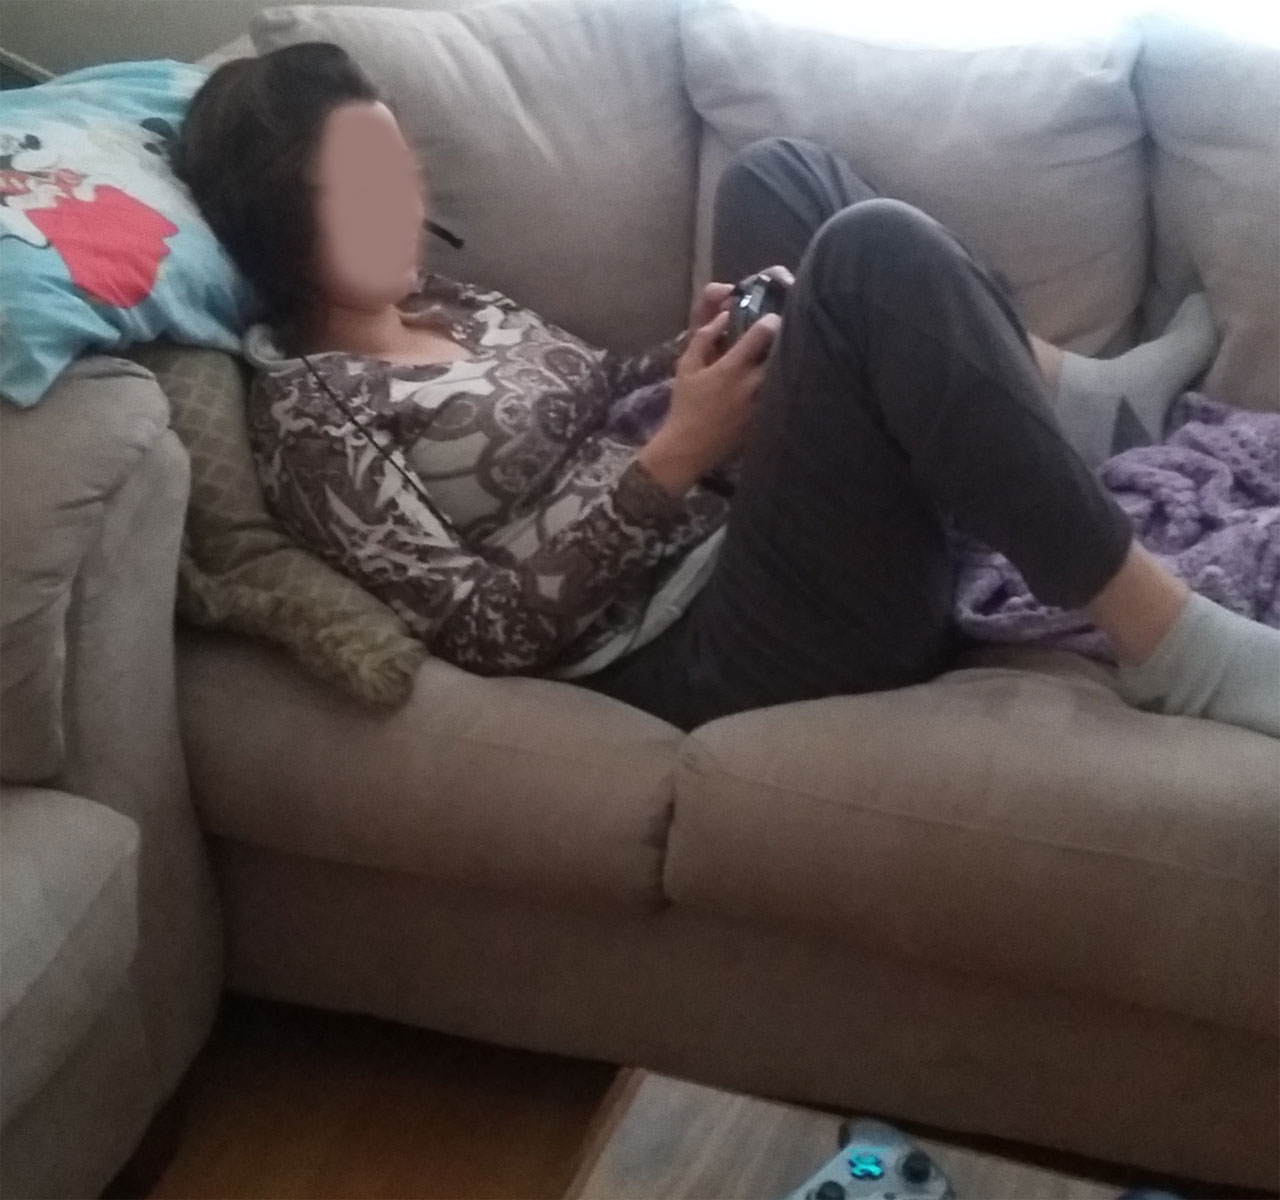 Posture laying on couch gaming image